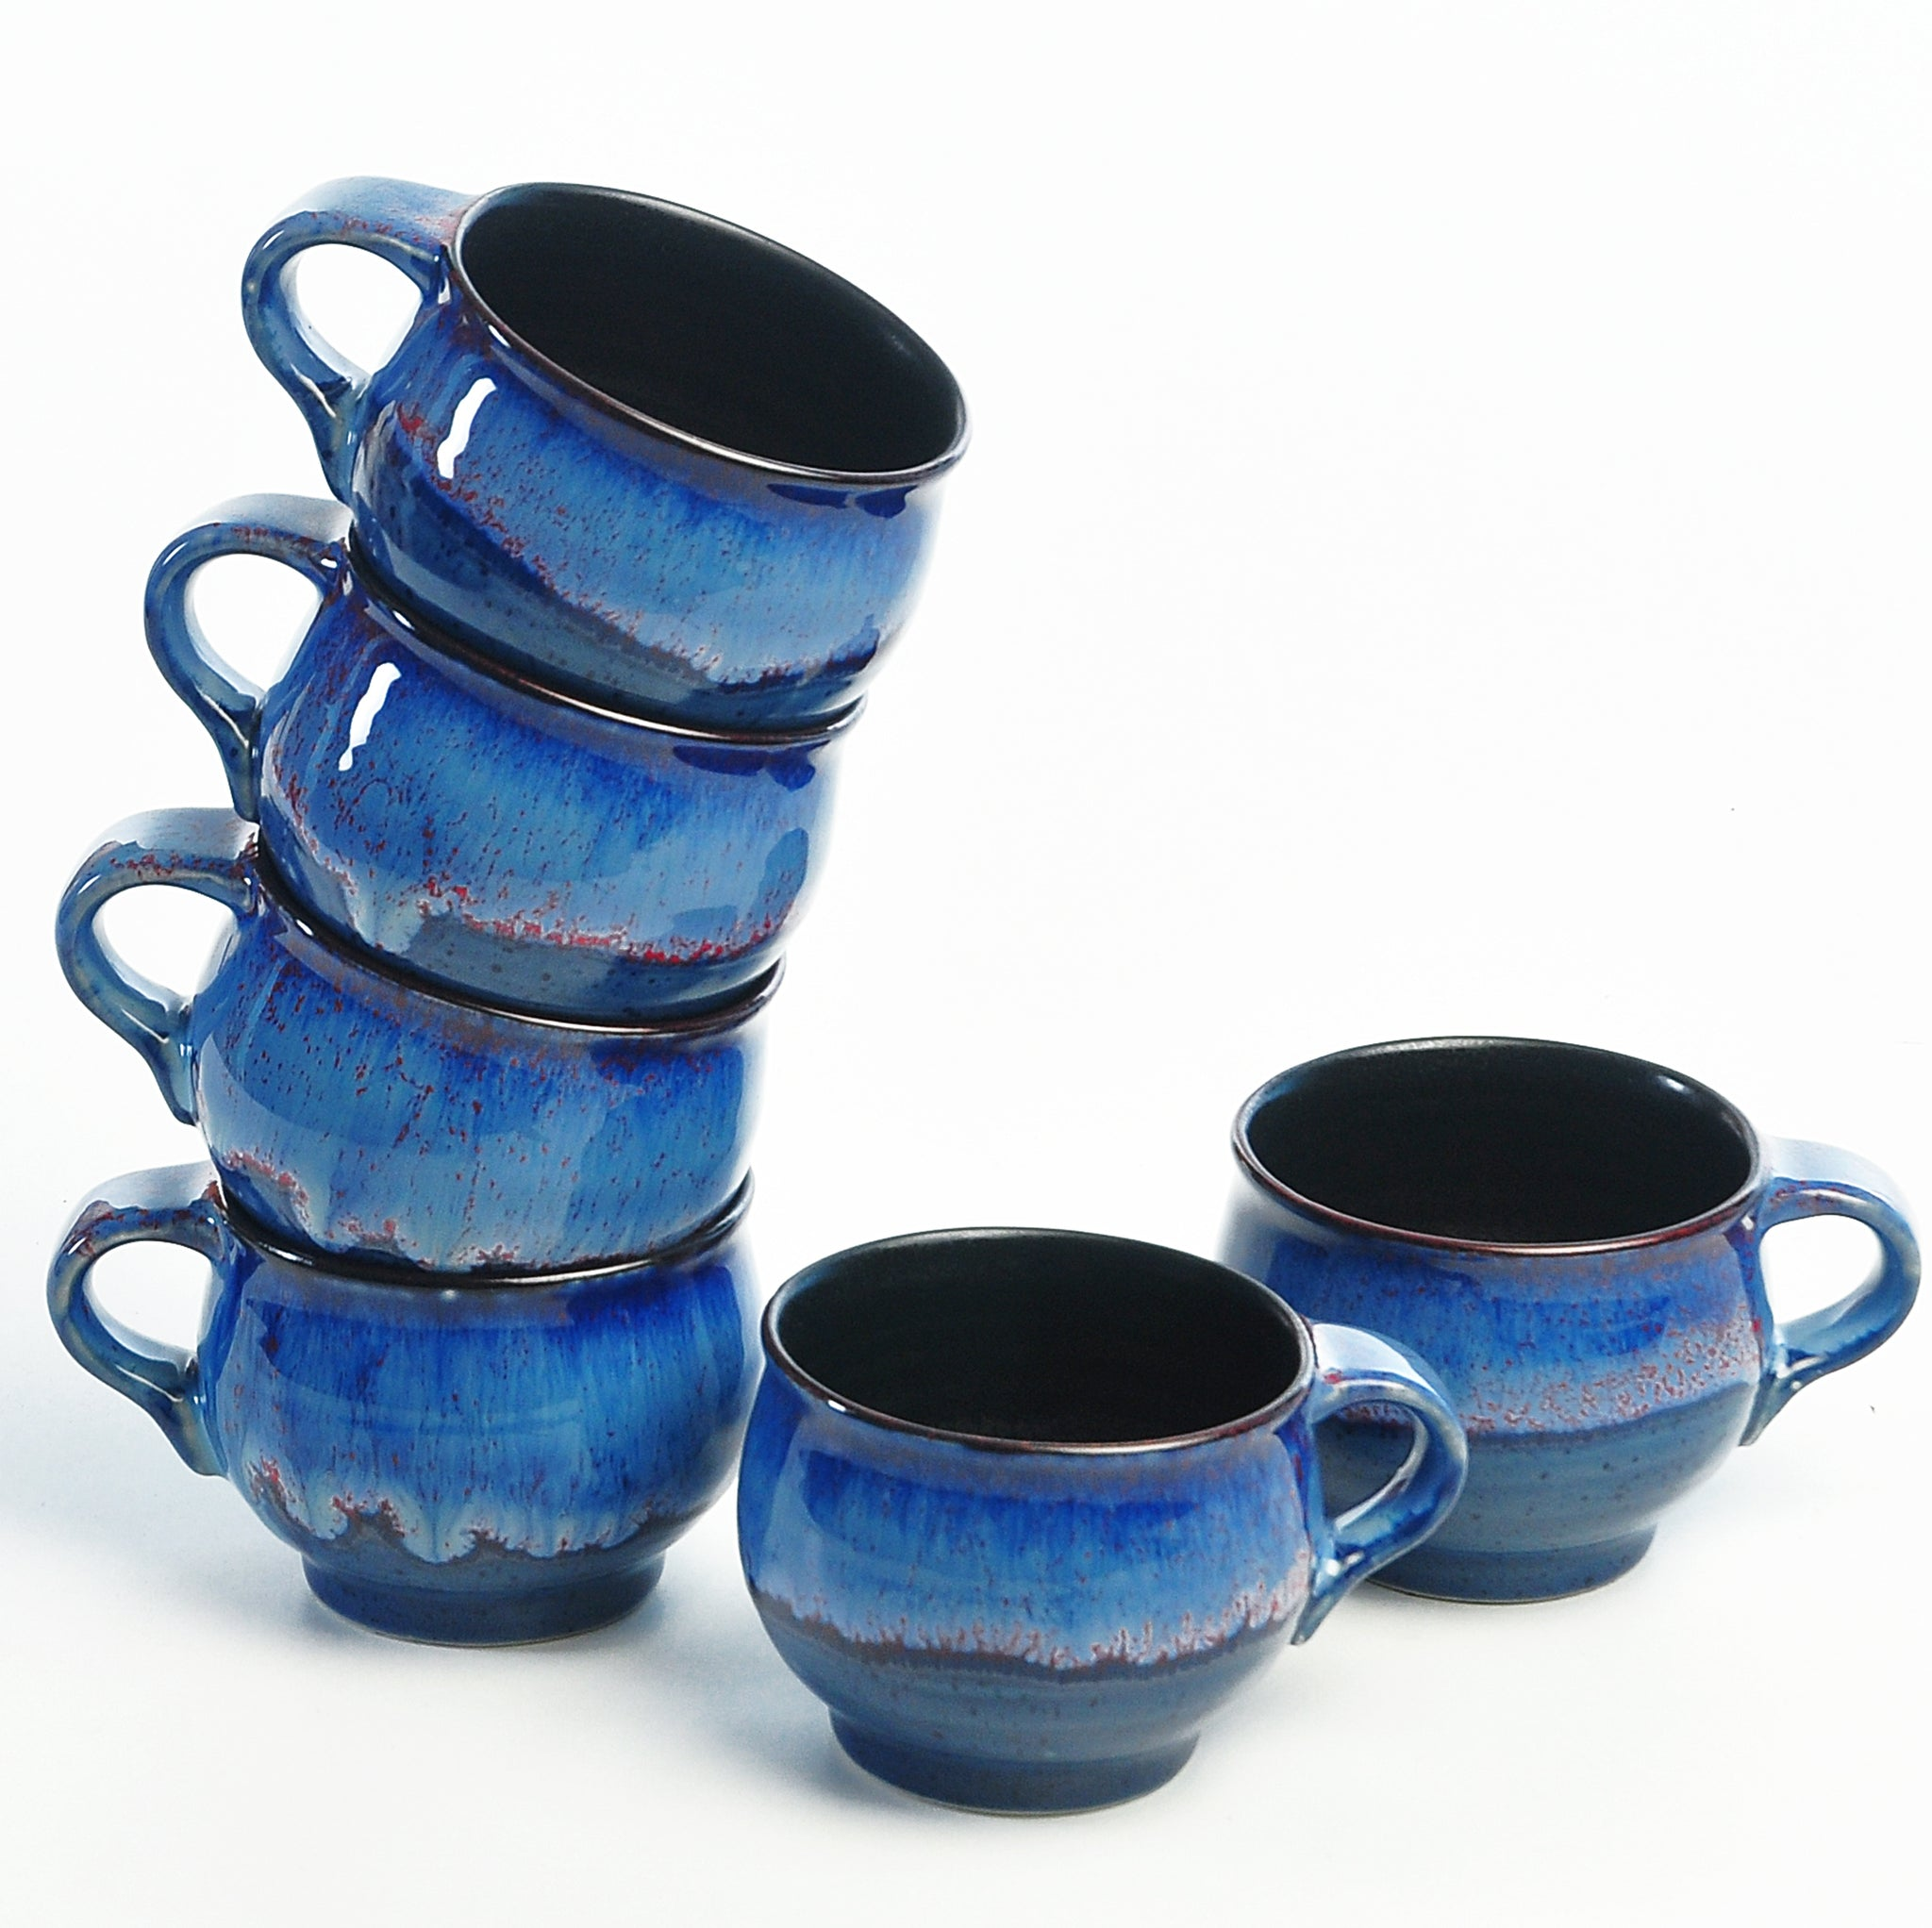 studio-blue-handmade-coffee-mugs-dec5426